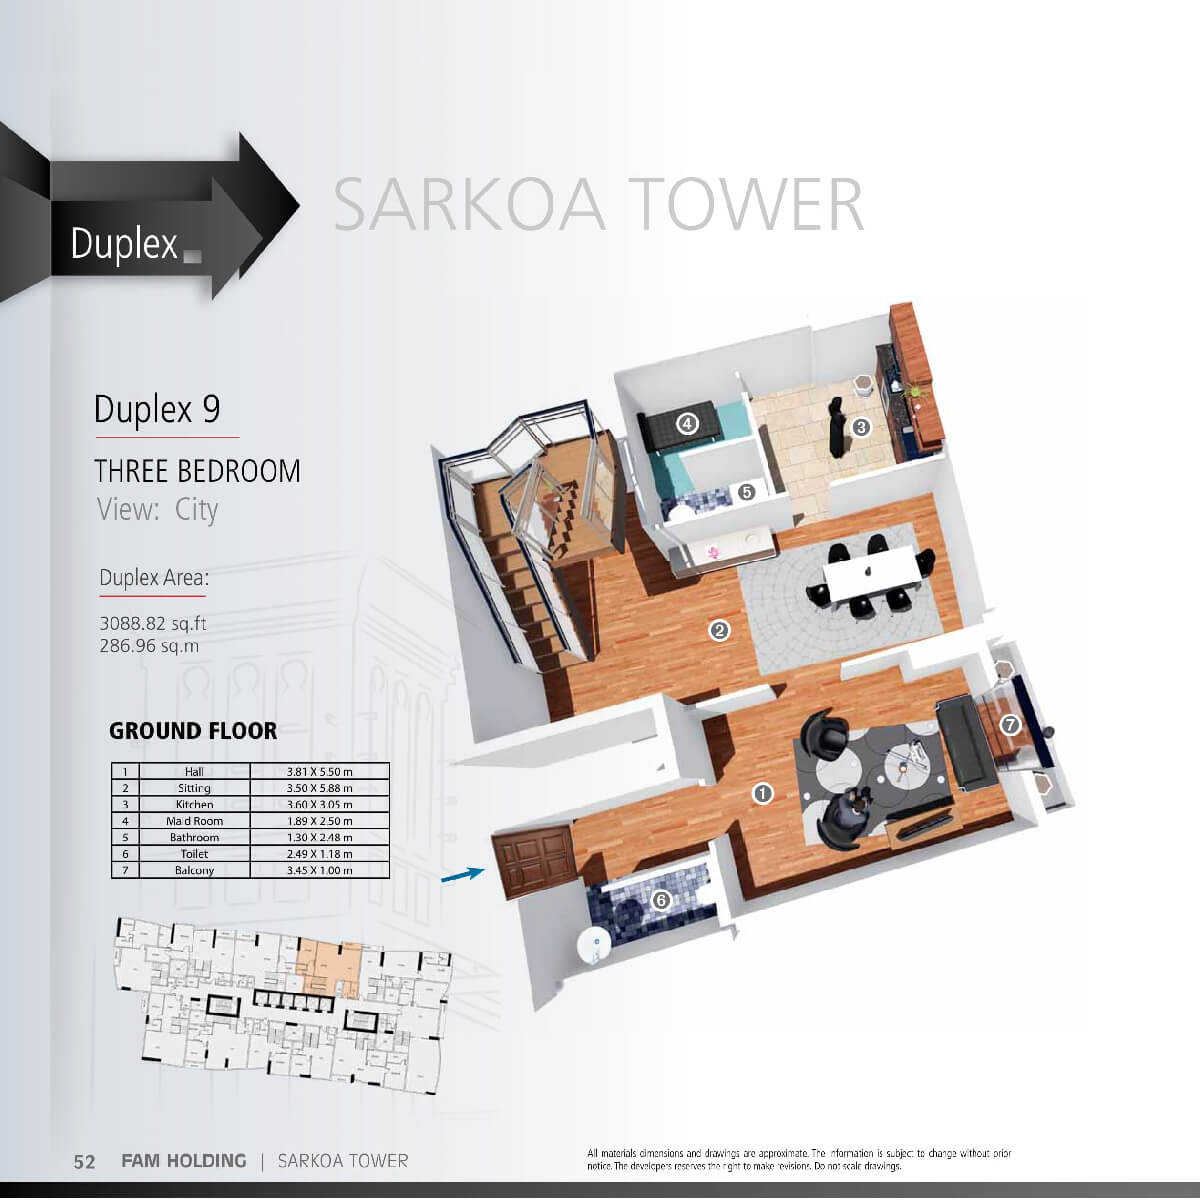 Planning of the apartment 3BR, 3088.82 in Sarkoa Tower, Sharjah